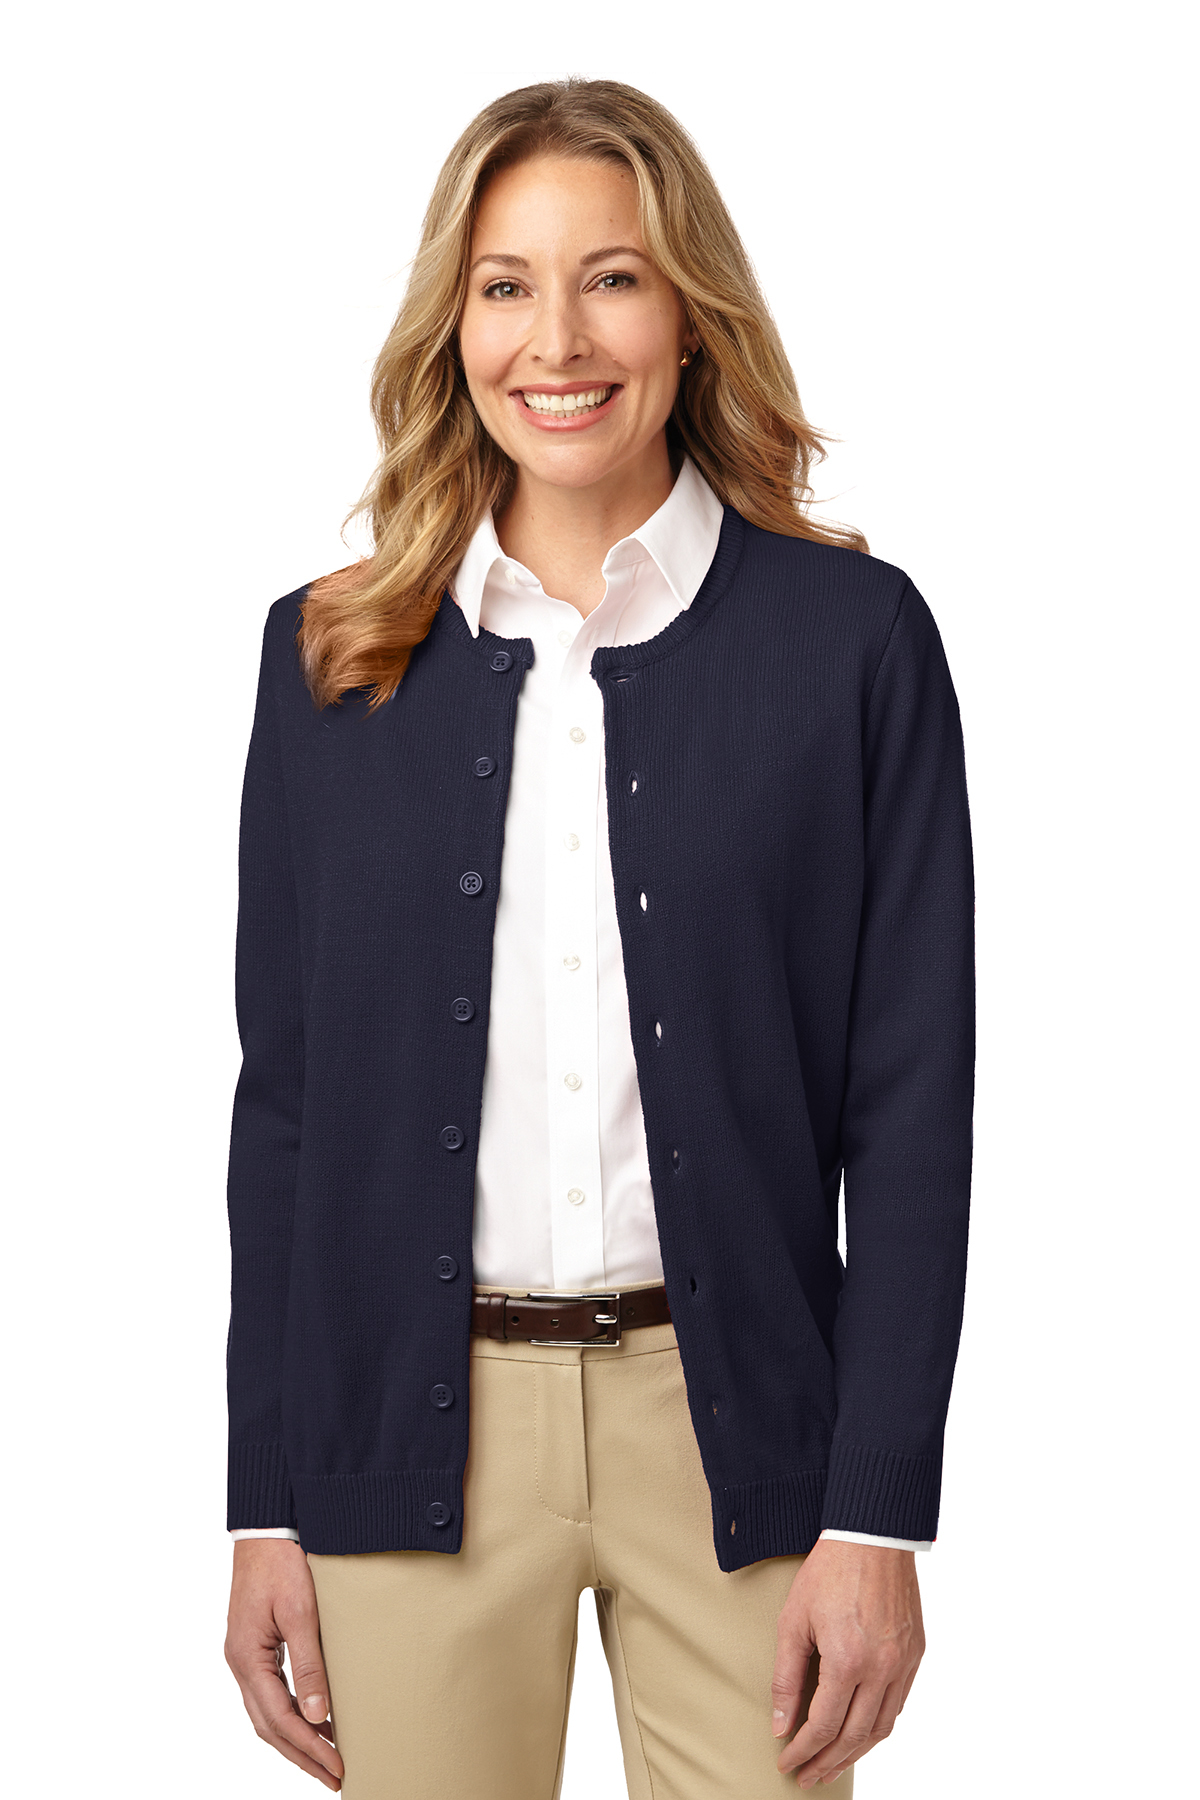 Port Authority® Ladies Value Jewel-Neck Cardigan Sweater  c4b5f923d